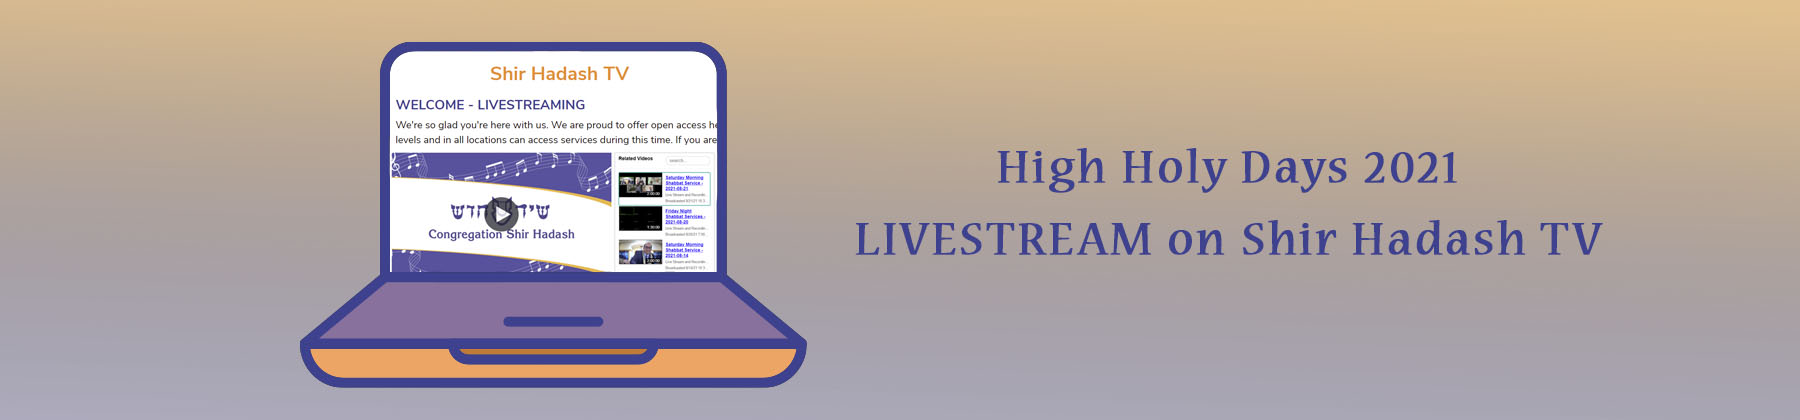 """<a href=""""https://www.shirhadash.org/live""""                                     target="""""""">                                                                 <span class=""""slider_title"""">                                     Virtual High Holy Days Livestream                                </span>                                                                 </a>                                                                                                                                                                                      <a href=""""https://www.shirhadash.org/live"""" class=""""slider_link""""                             target="""""""">                             Click Here to Watch                            </a>"""